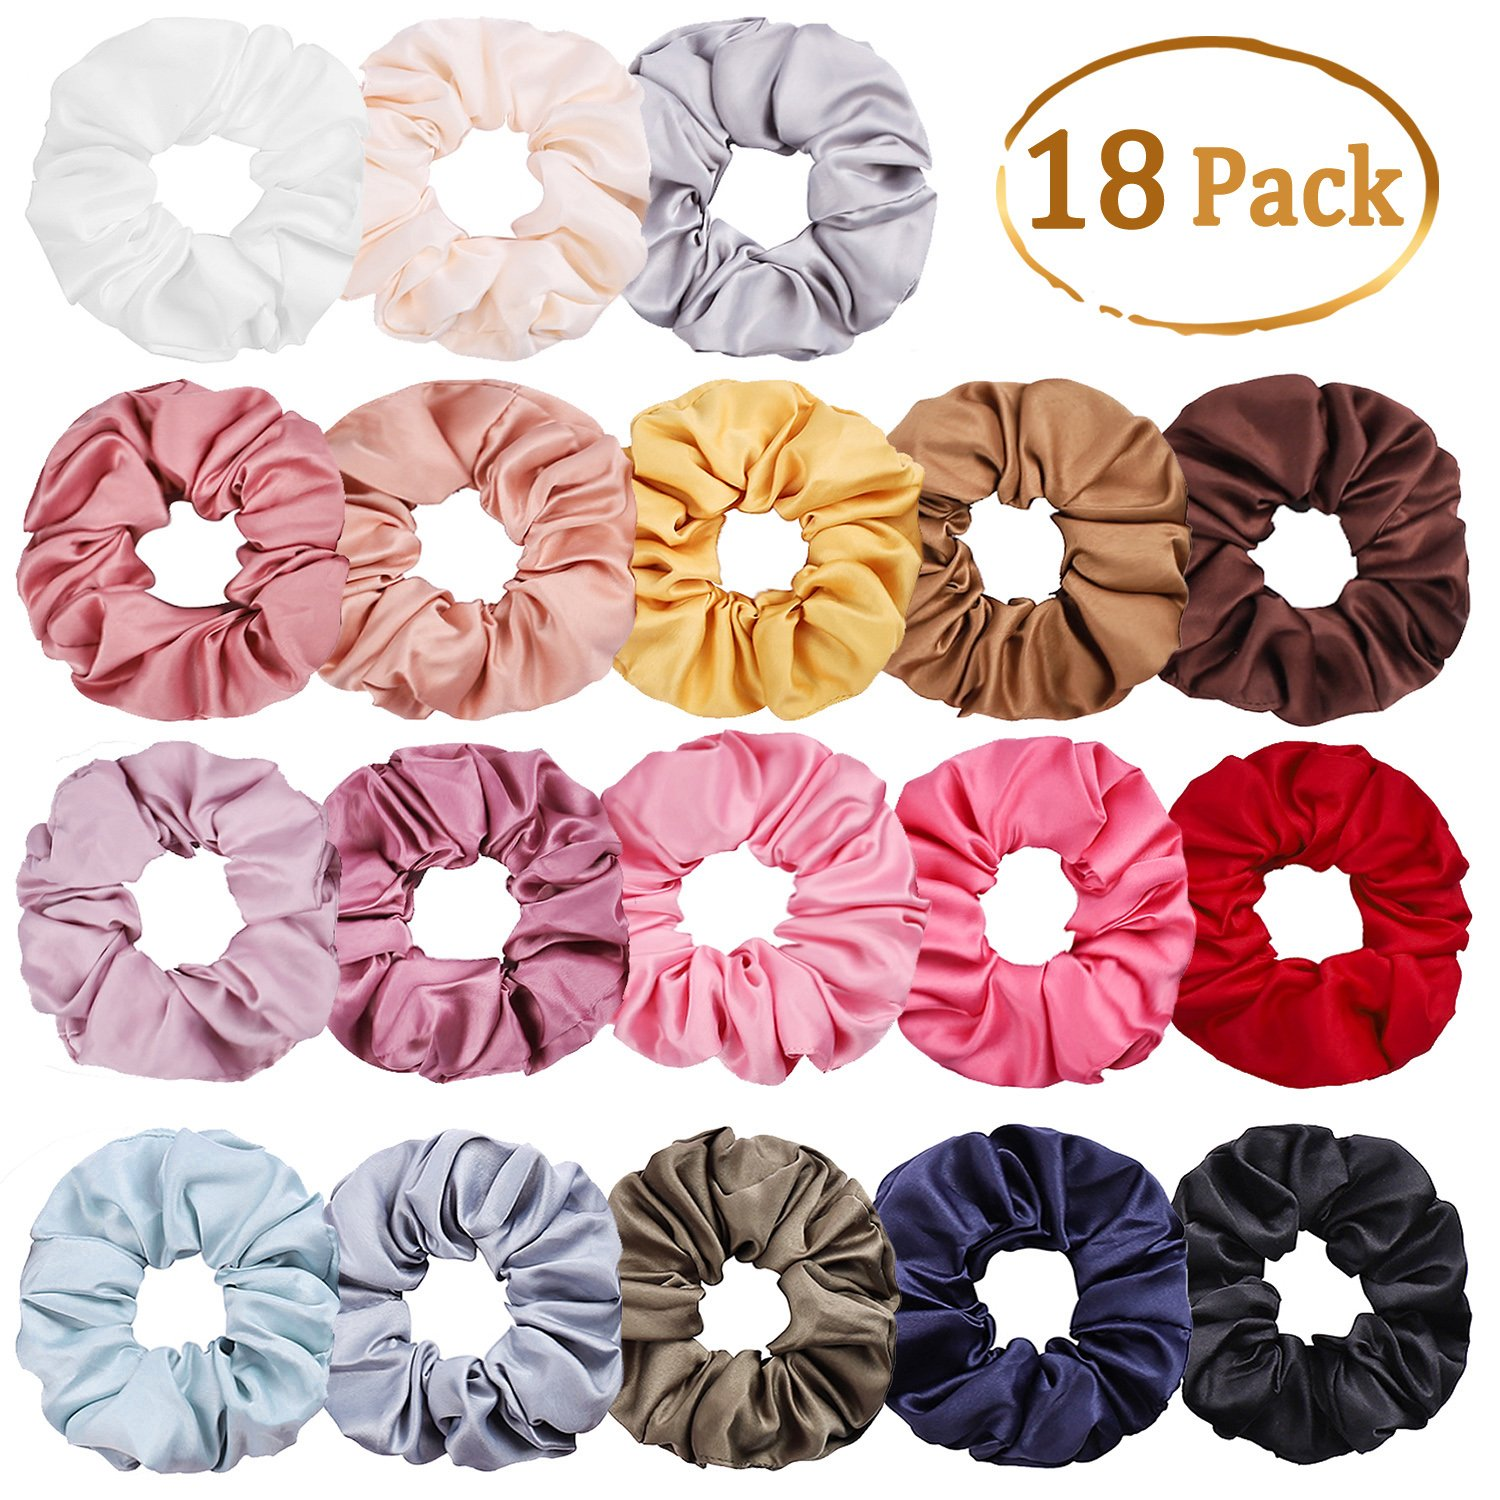 Whaline 18 Colors Satin Hair Scrunchies Elastic Hair Bobbles Ponytail Holder Hair Scrunchy Vintage Hair Bands Ties for Women Girls by Whaline